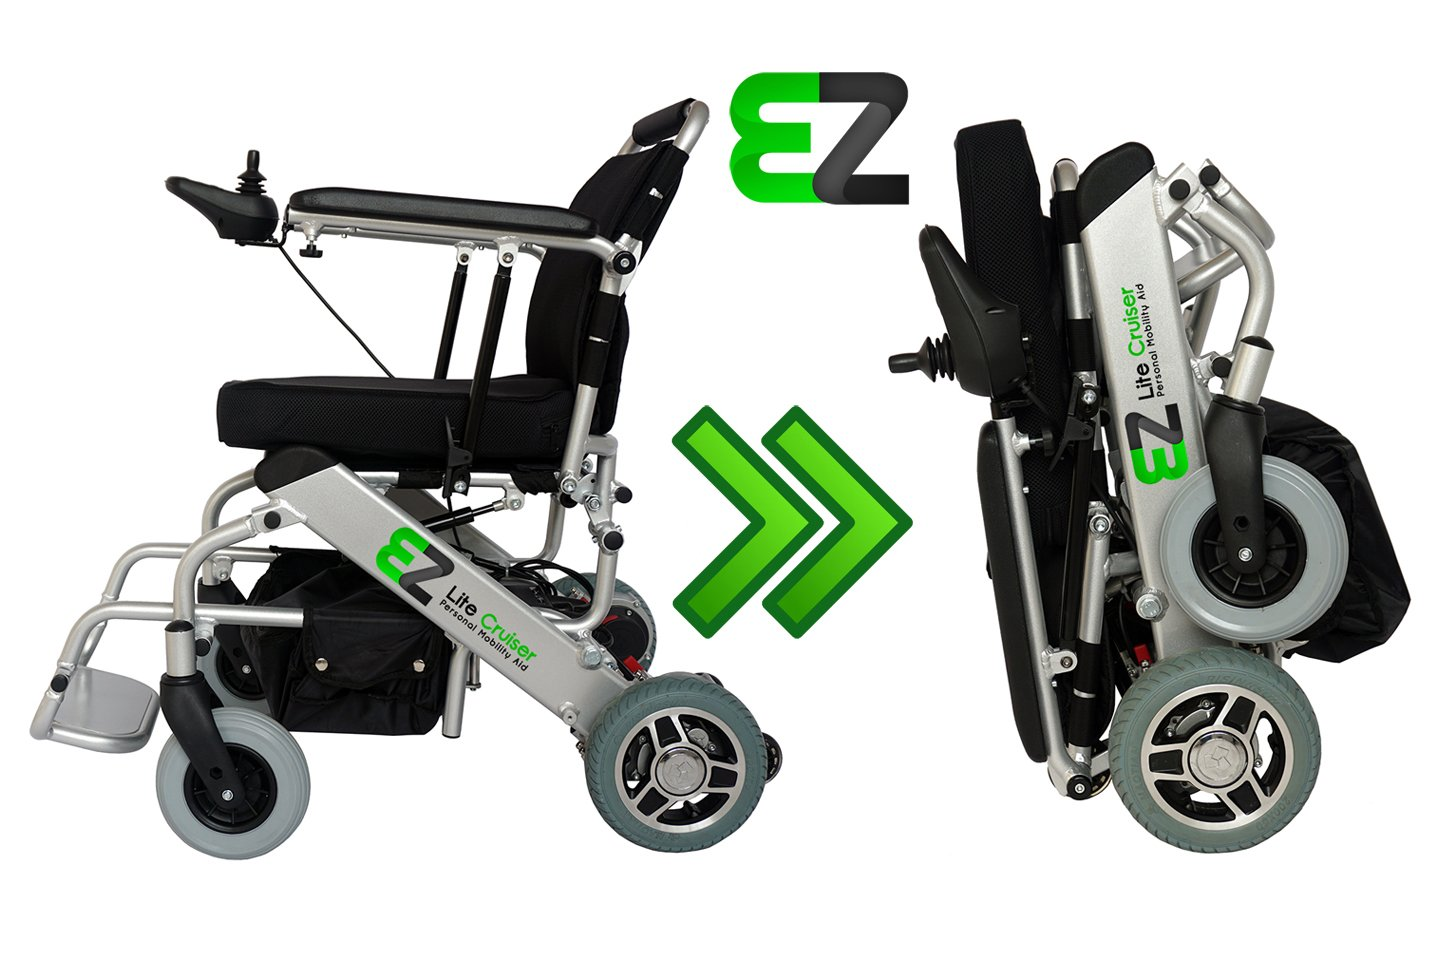 EZ Lite Cruiser - Standard Model - Personal Mobility Aid - Light Weight Folding Power Wheelchair by Ez lite cruiser